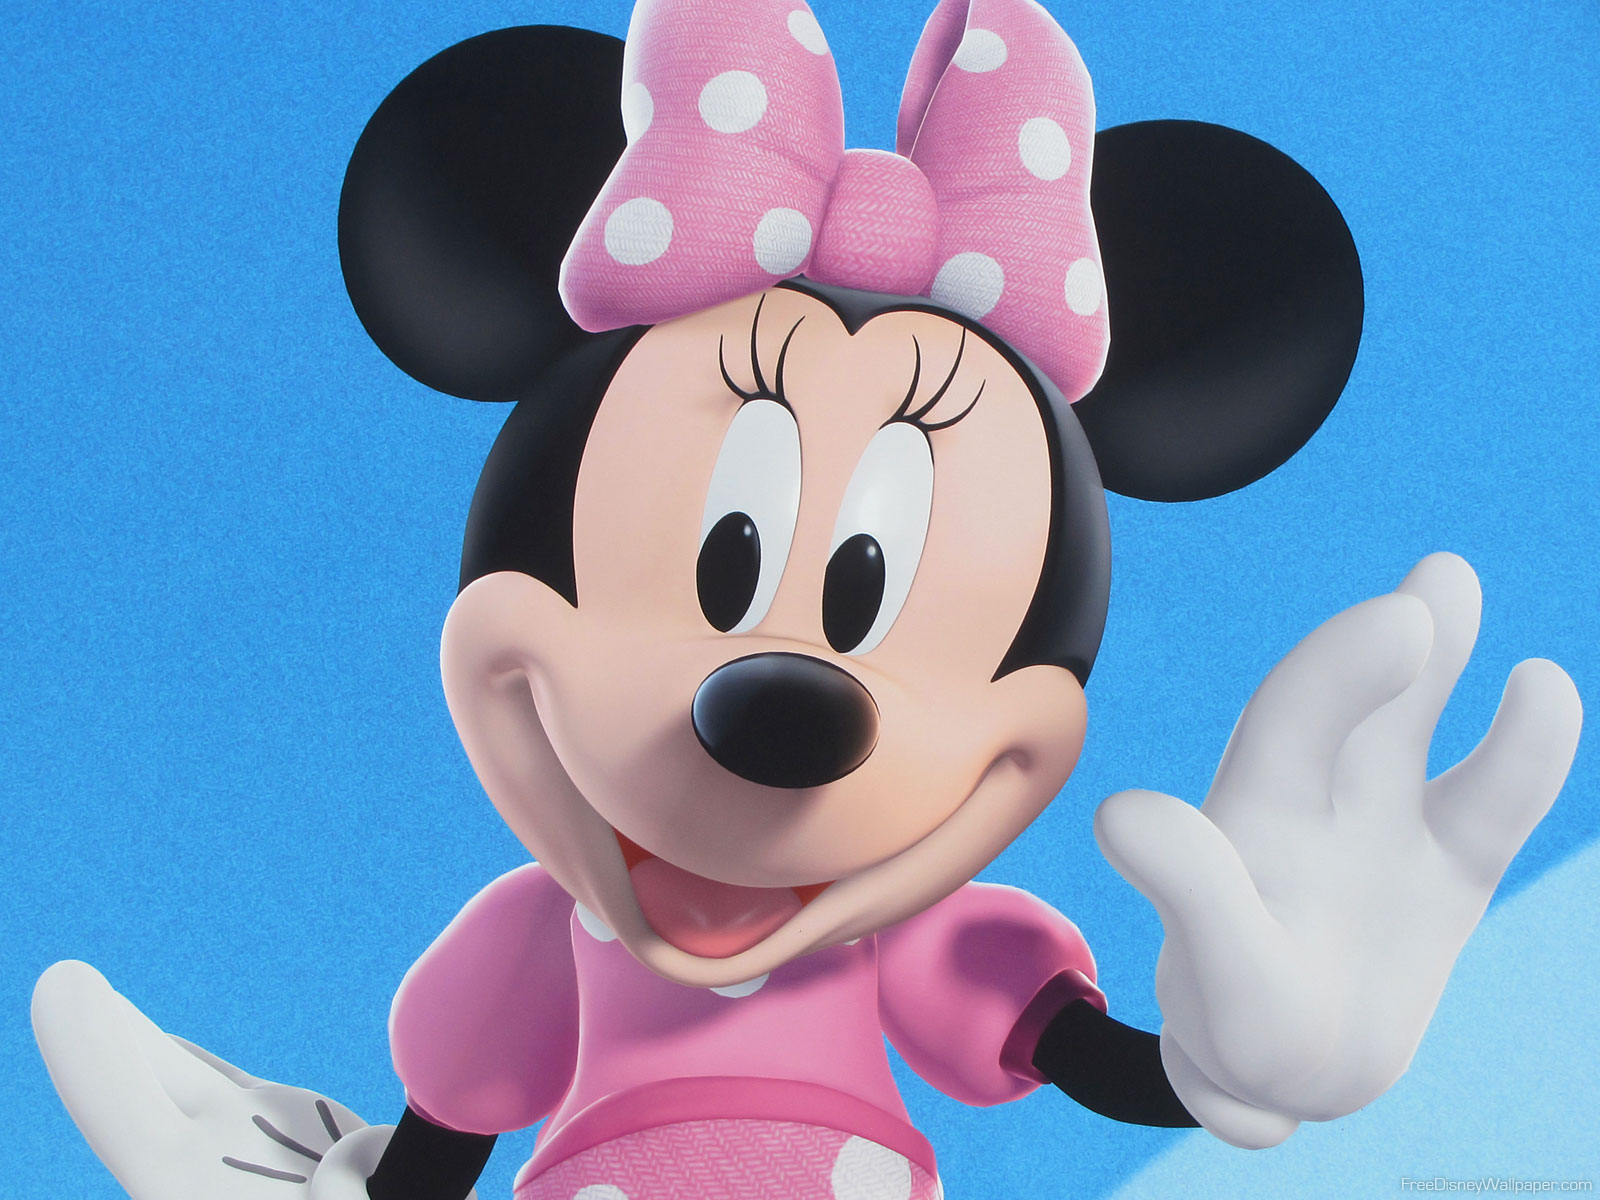 [43+] Baby Minnie Mouse Wallpaper on WallpaperSafari